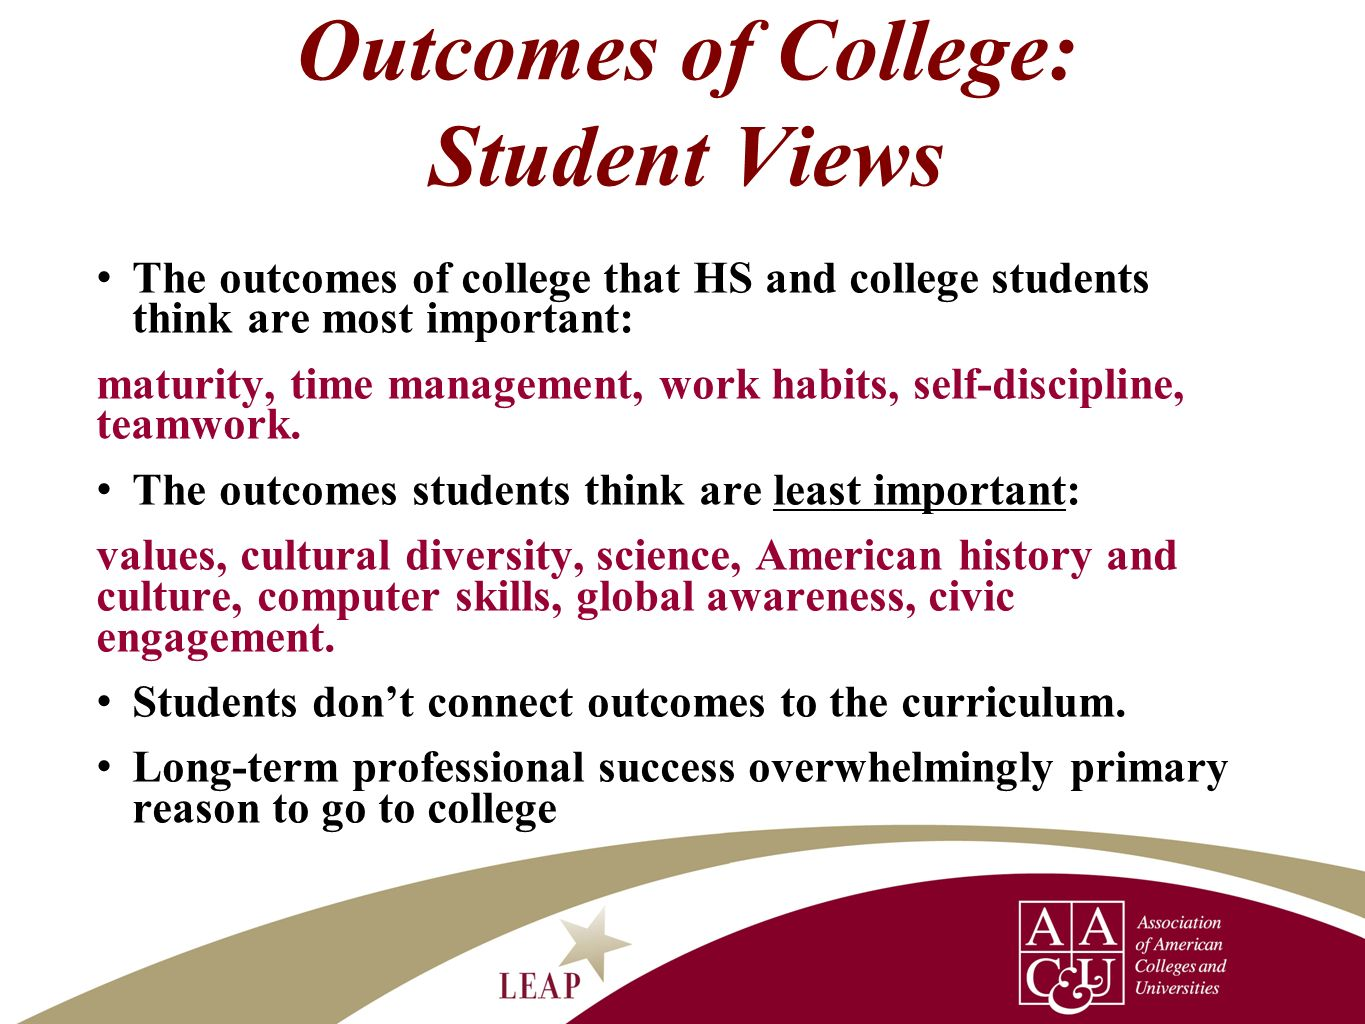 Outcomes of College: Student Views